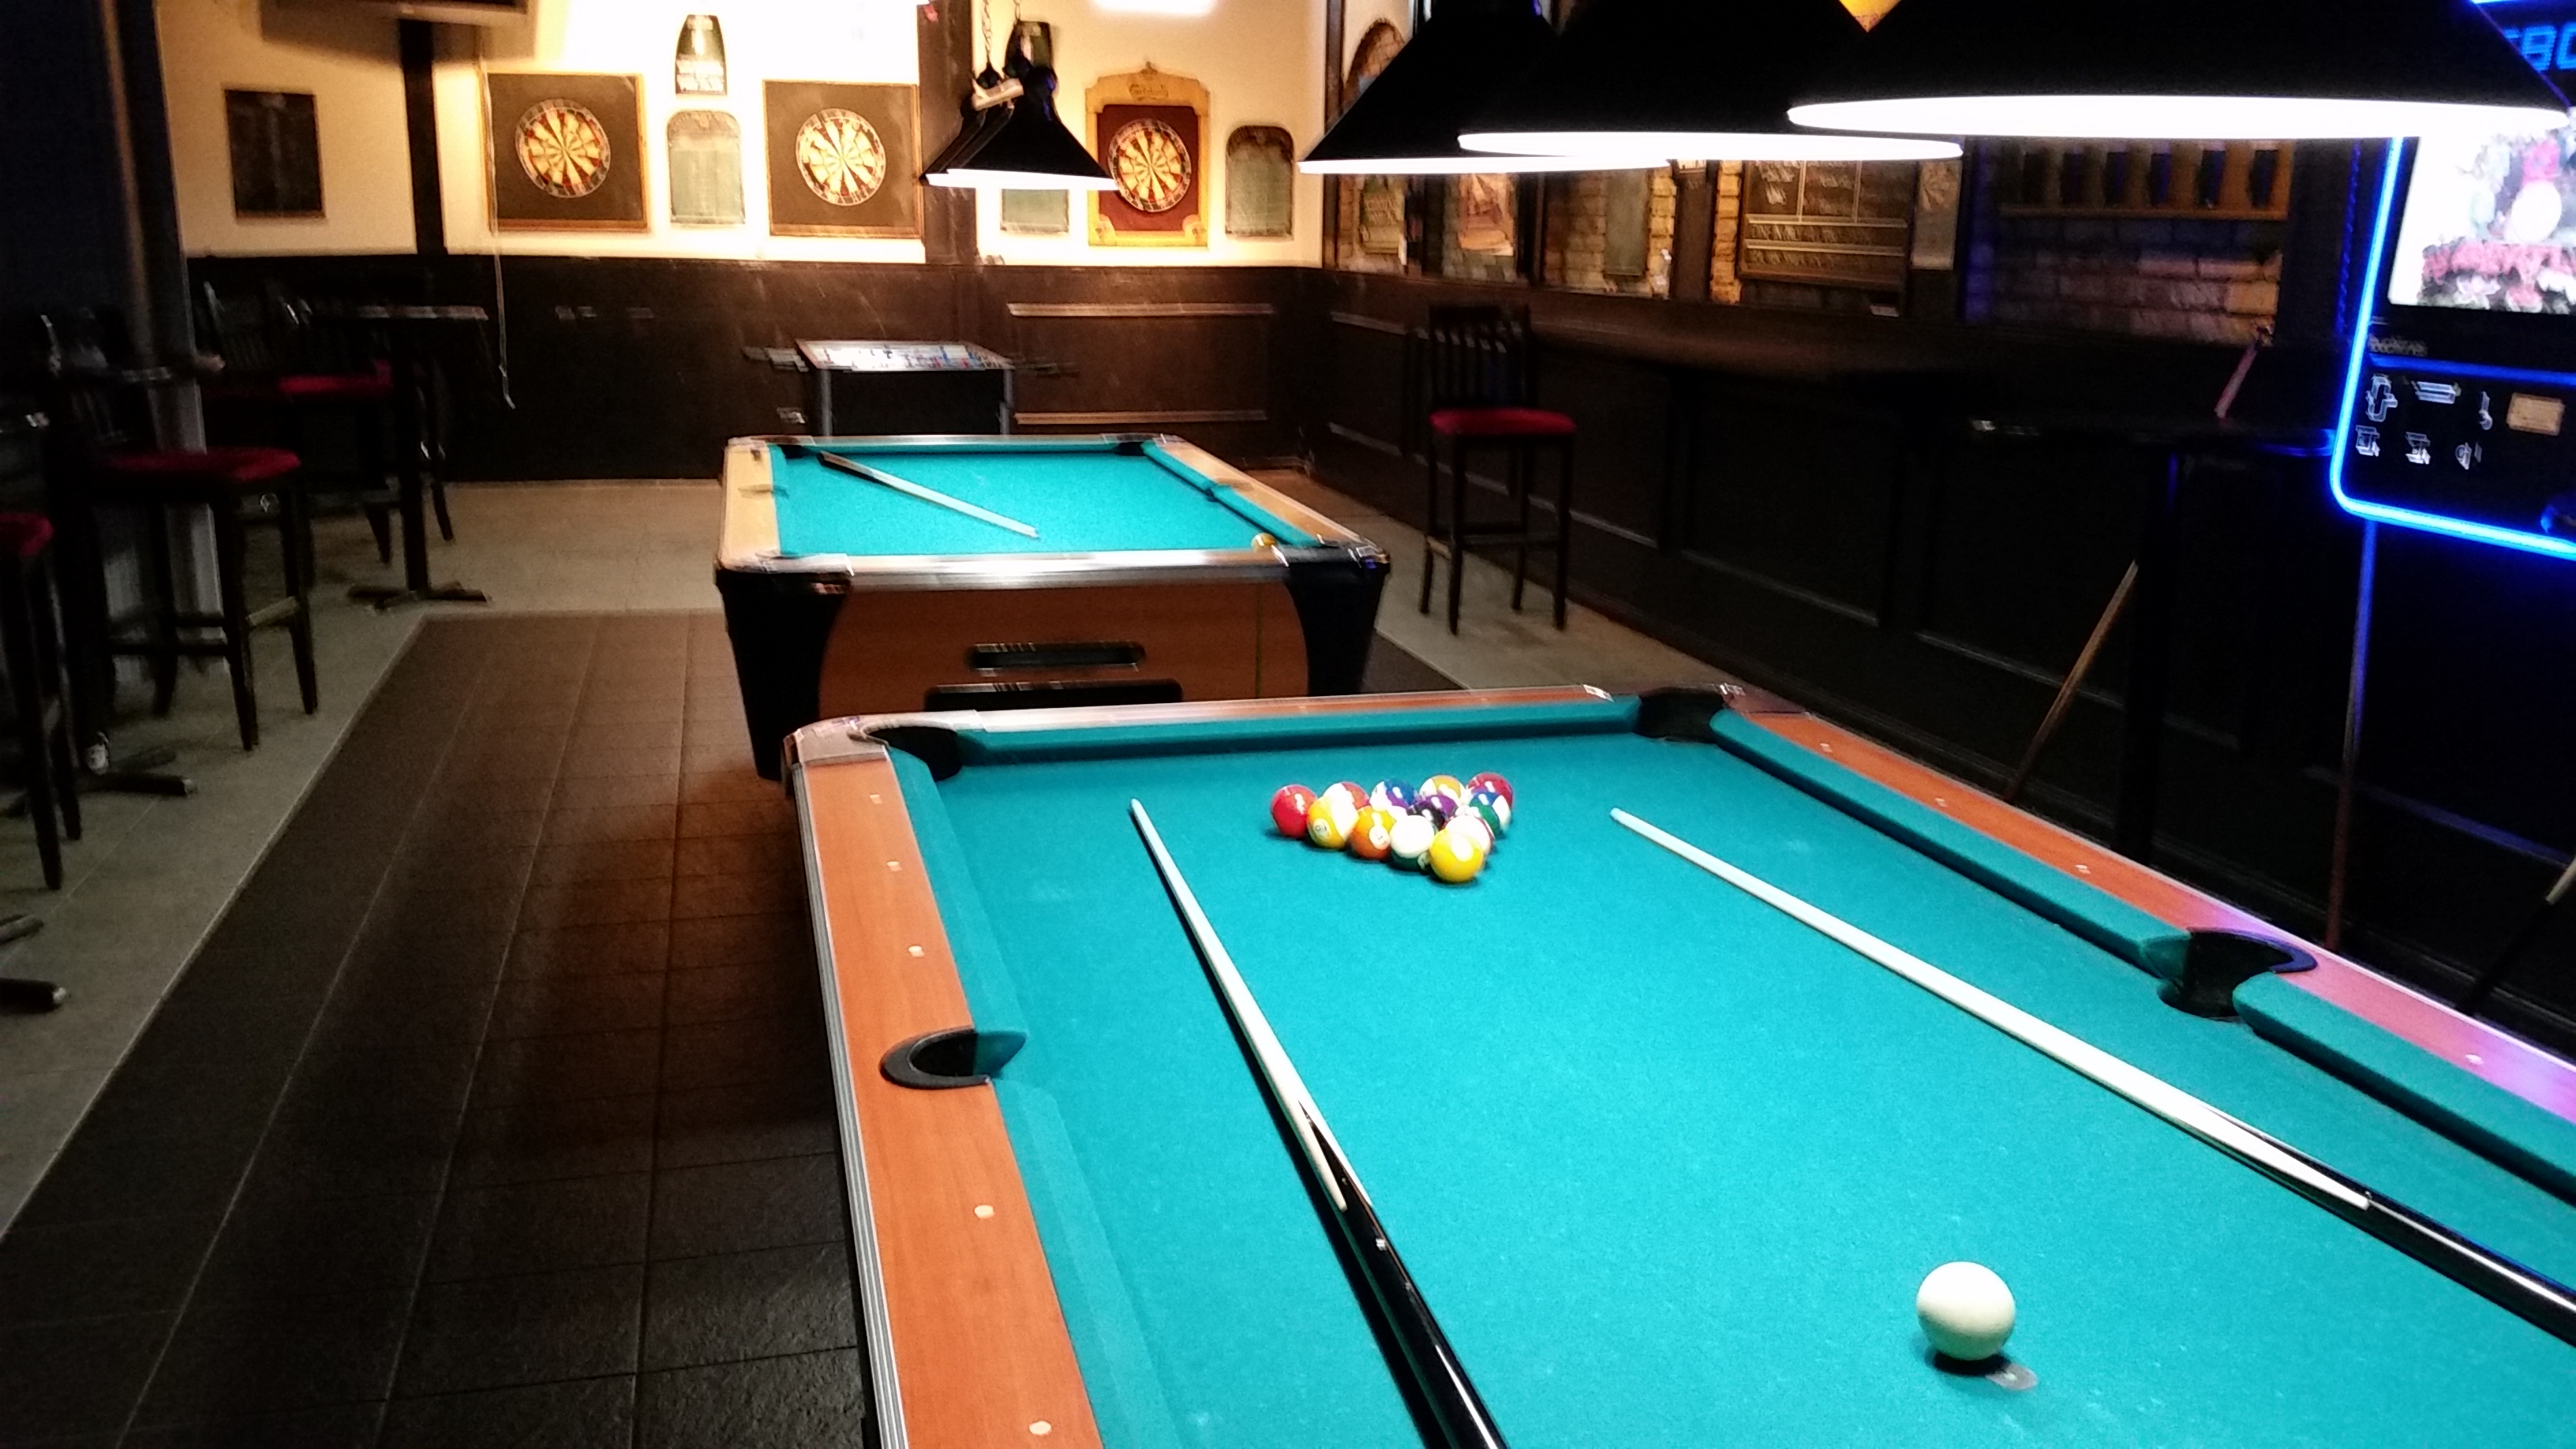 3 Monkeys Bar & Grill Pool Table and Jukebox area